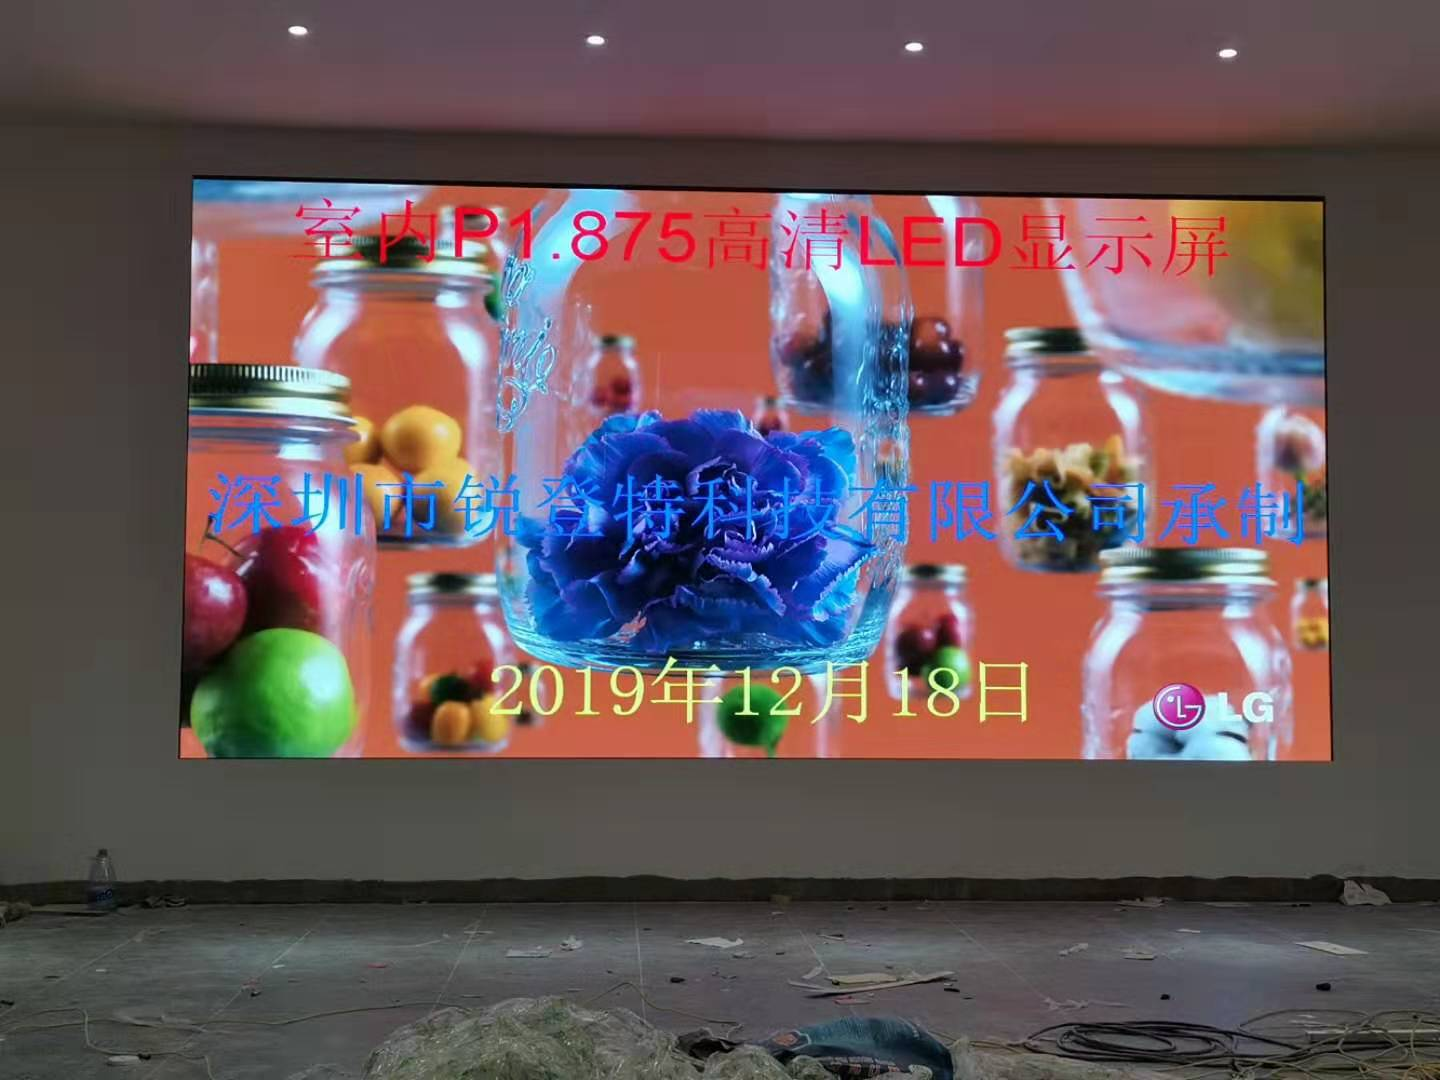 https://www.szradiant.com/products/fixed-instalaltion-led-display/fine-pitch-led-display/